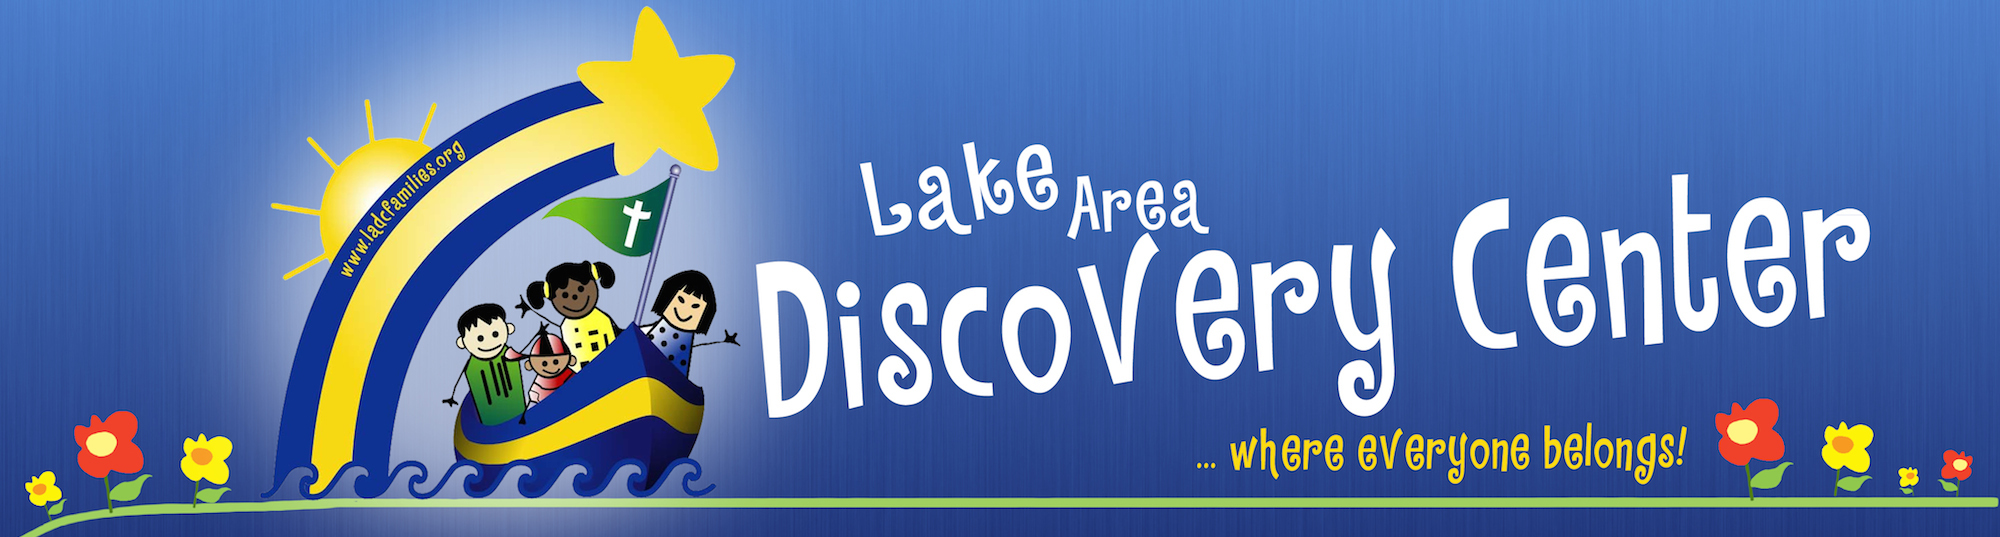 Lake Area Discovery Center at Annunciation